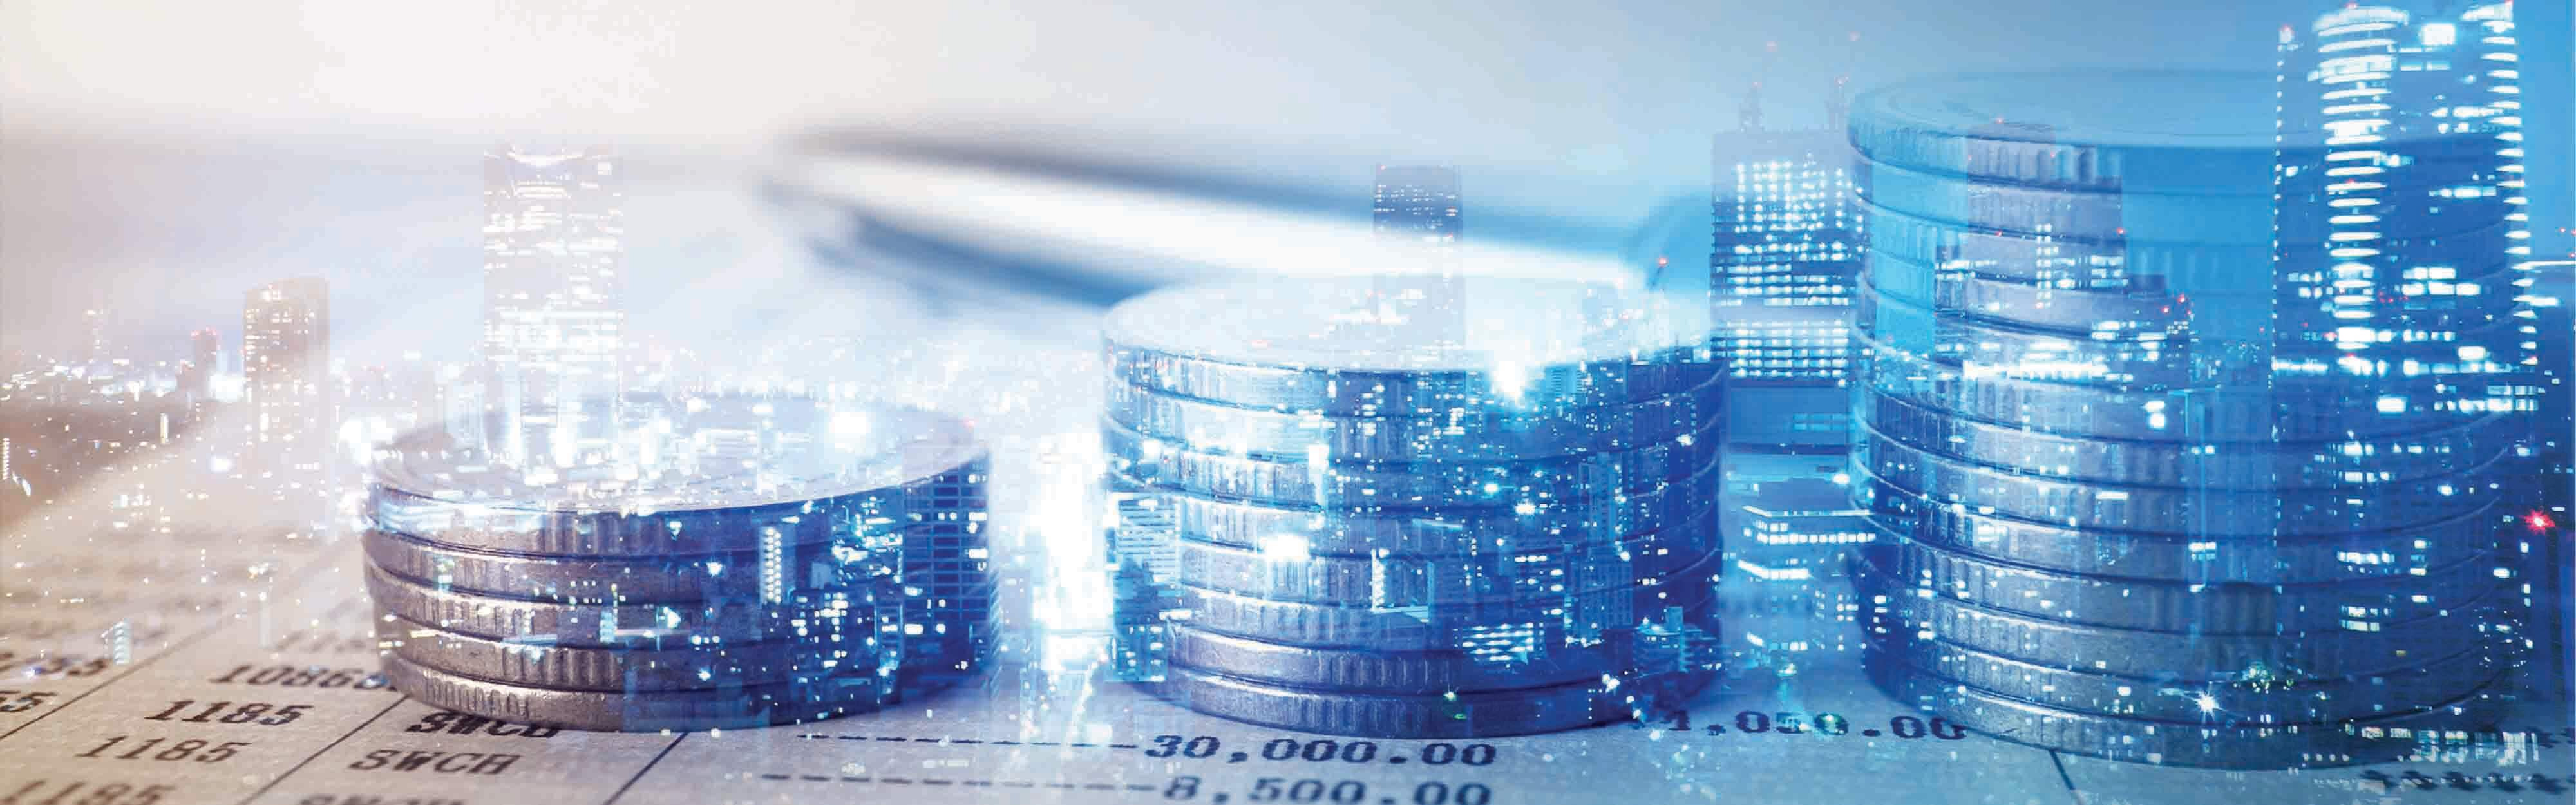 Banking IT Services and Technology Solutions